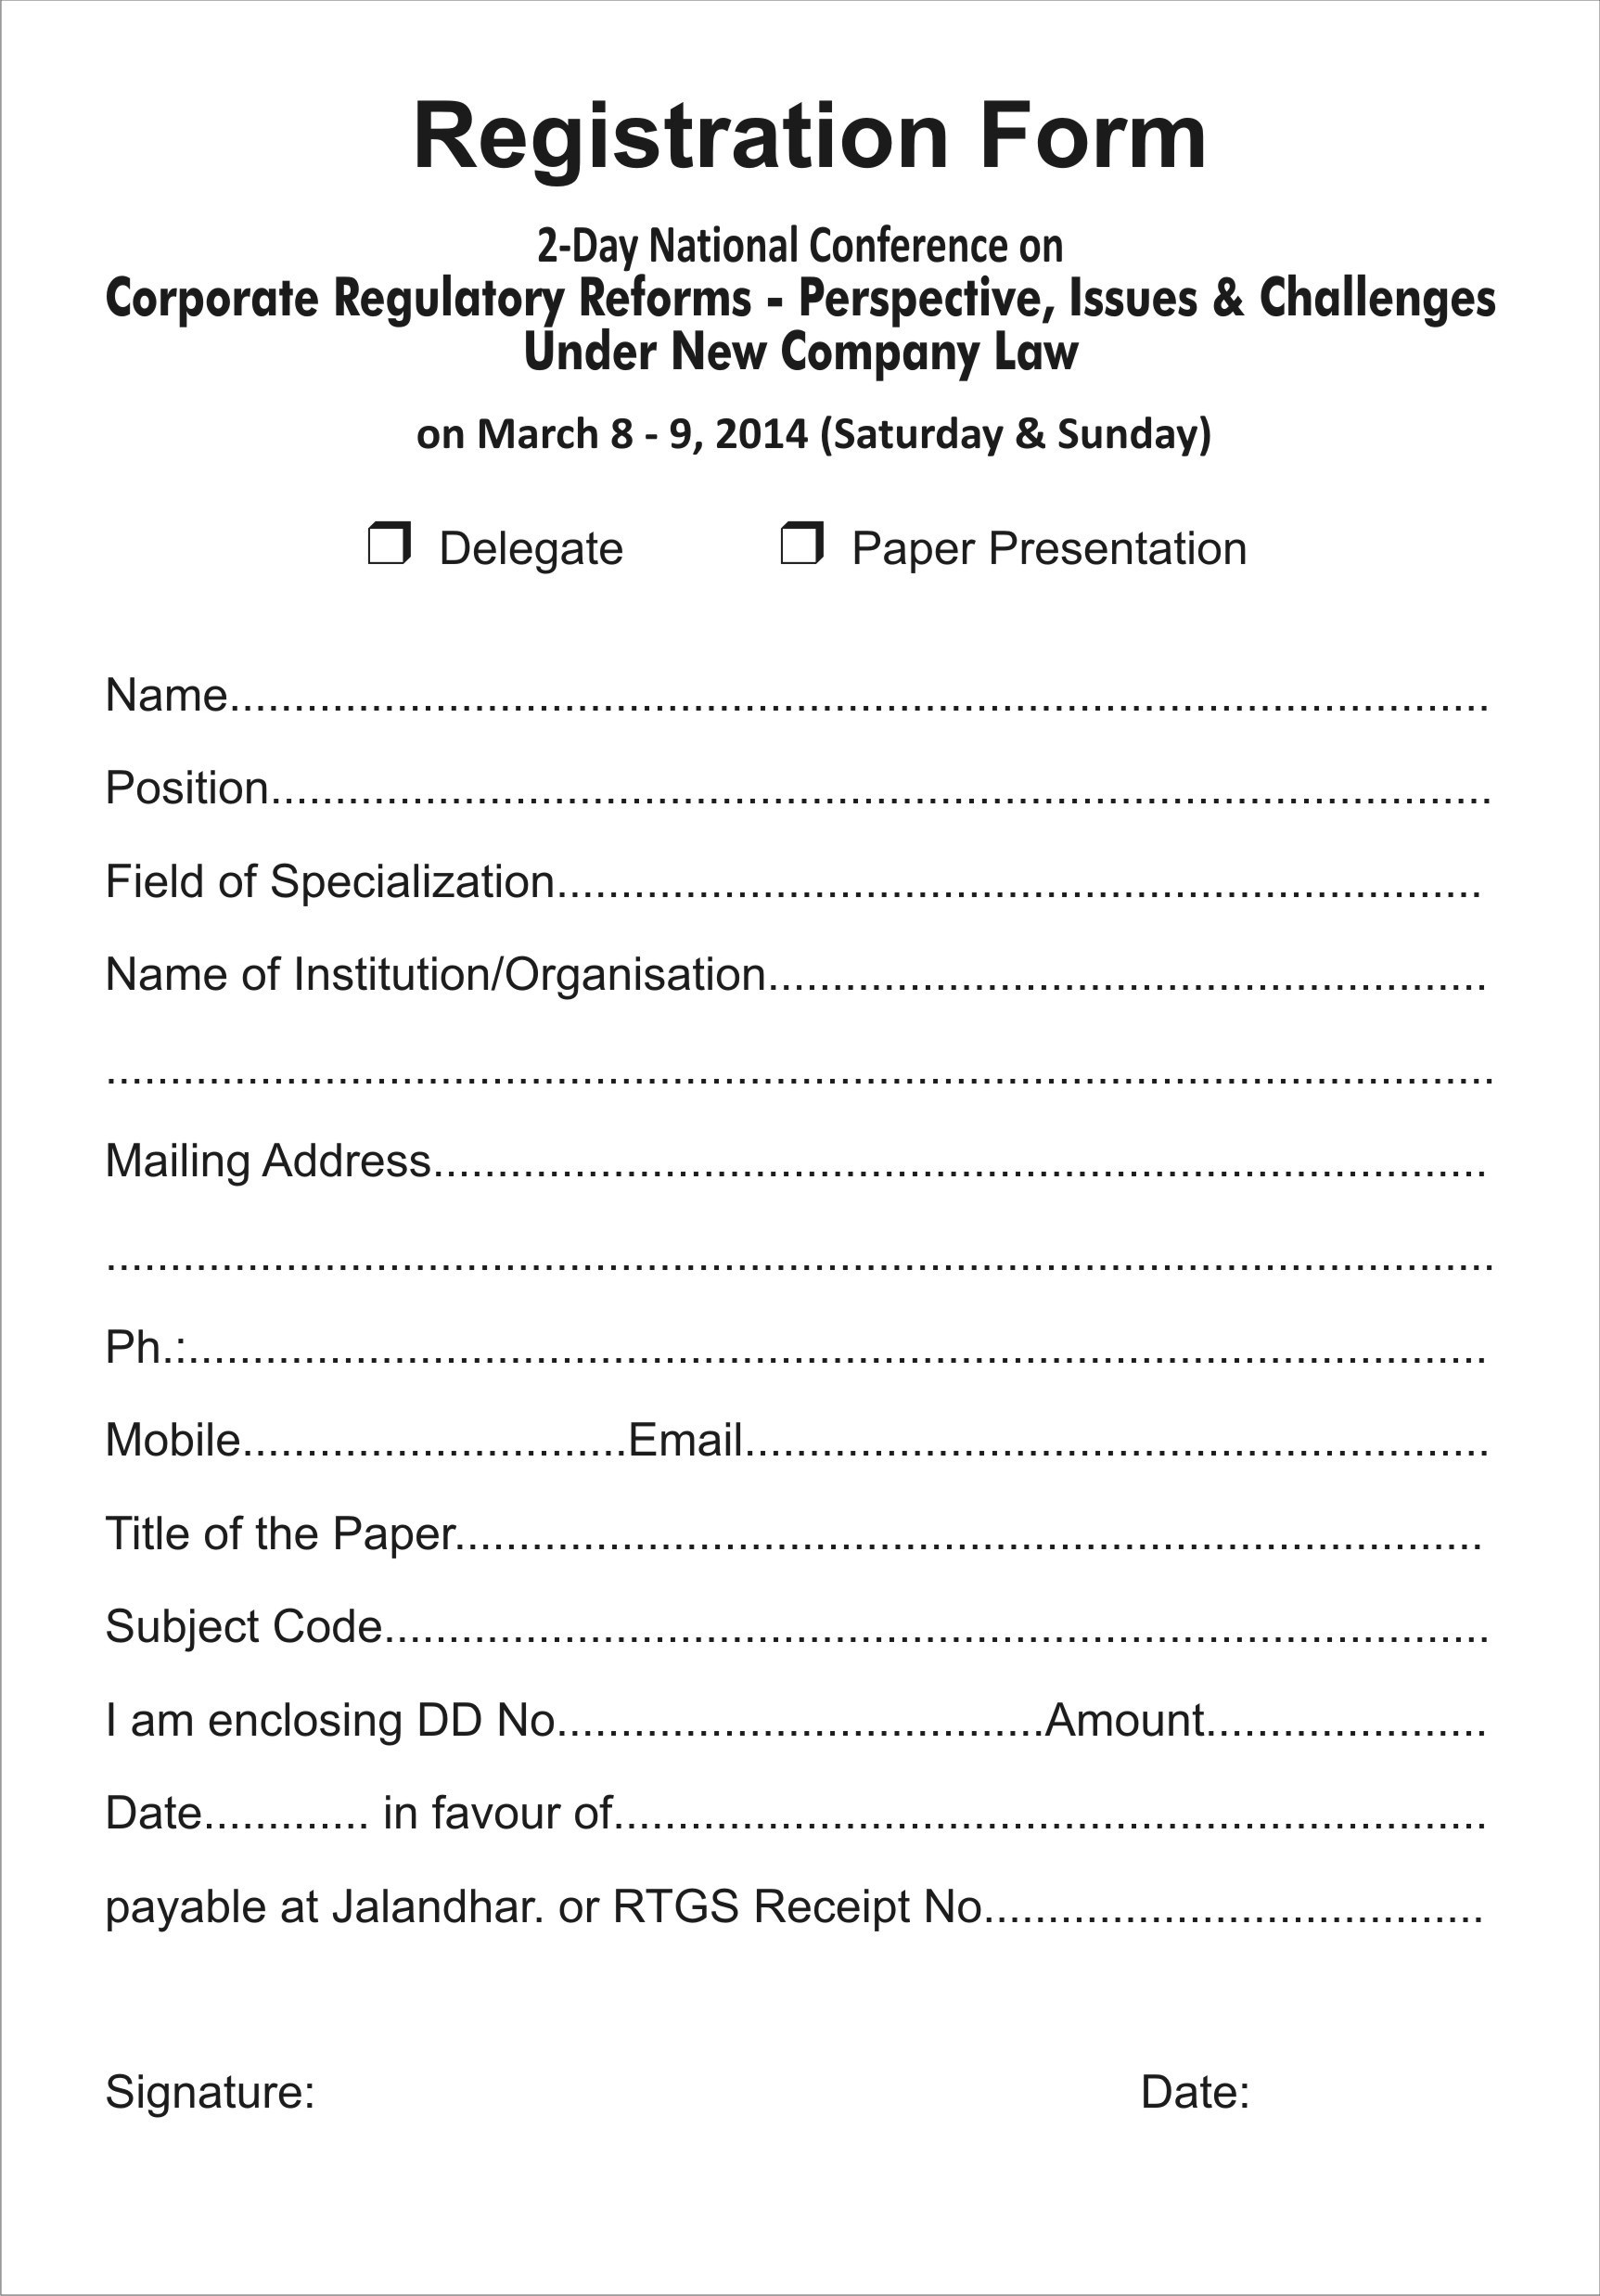 Free Printable Registration Form Template | Shop Fresh - Free Printable Membership Forms